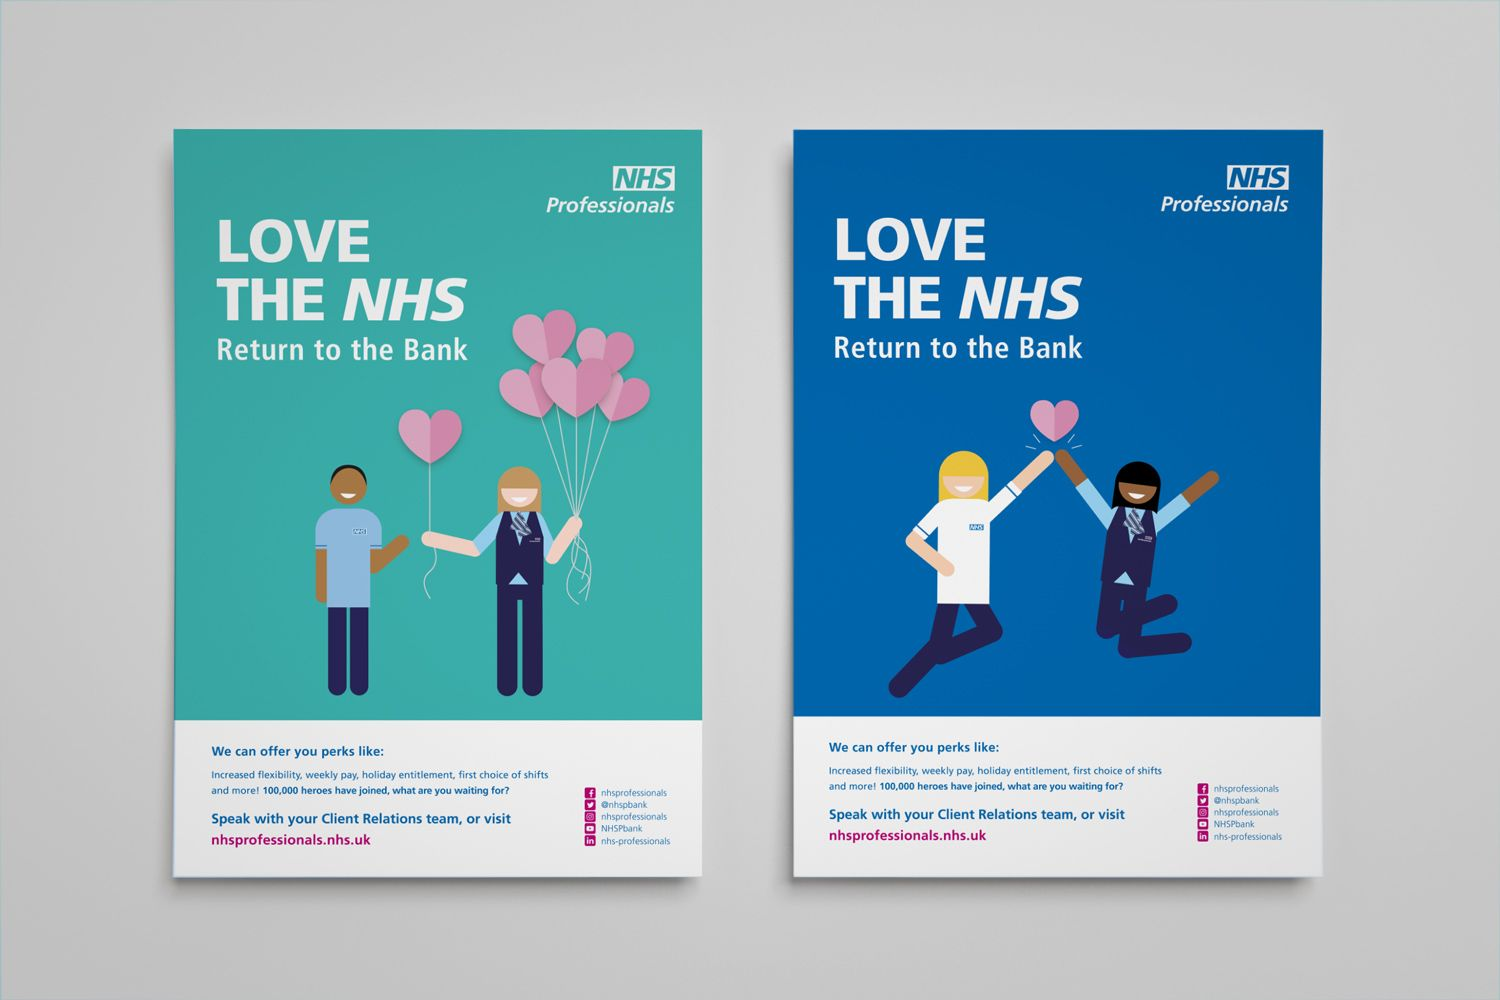 Love The Nhs Healthcare Campaign Poster Flexible Working With